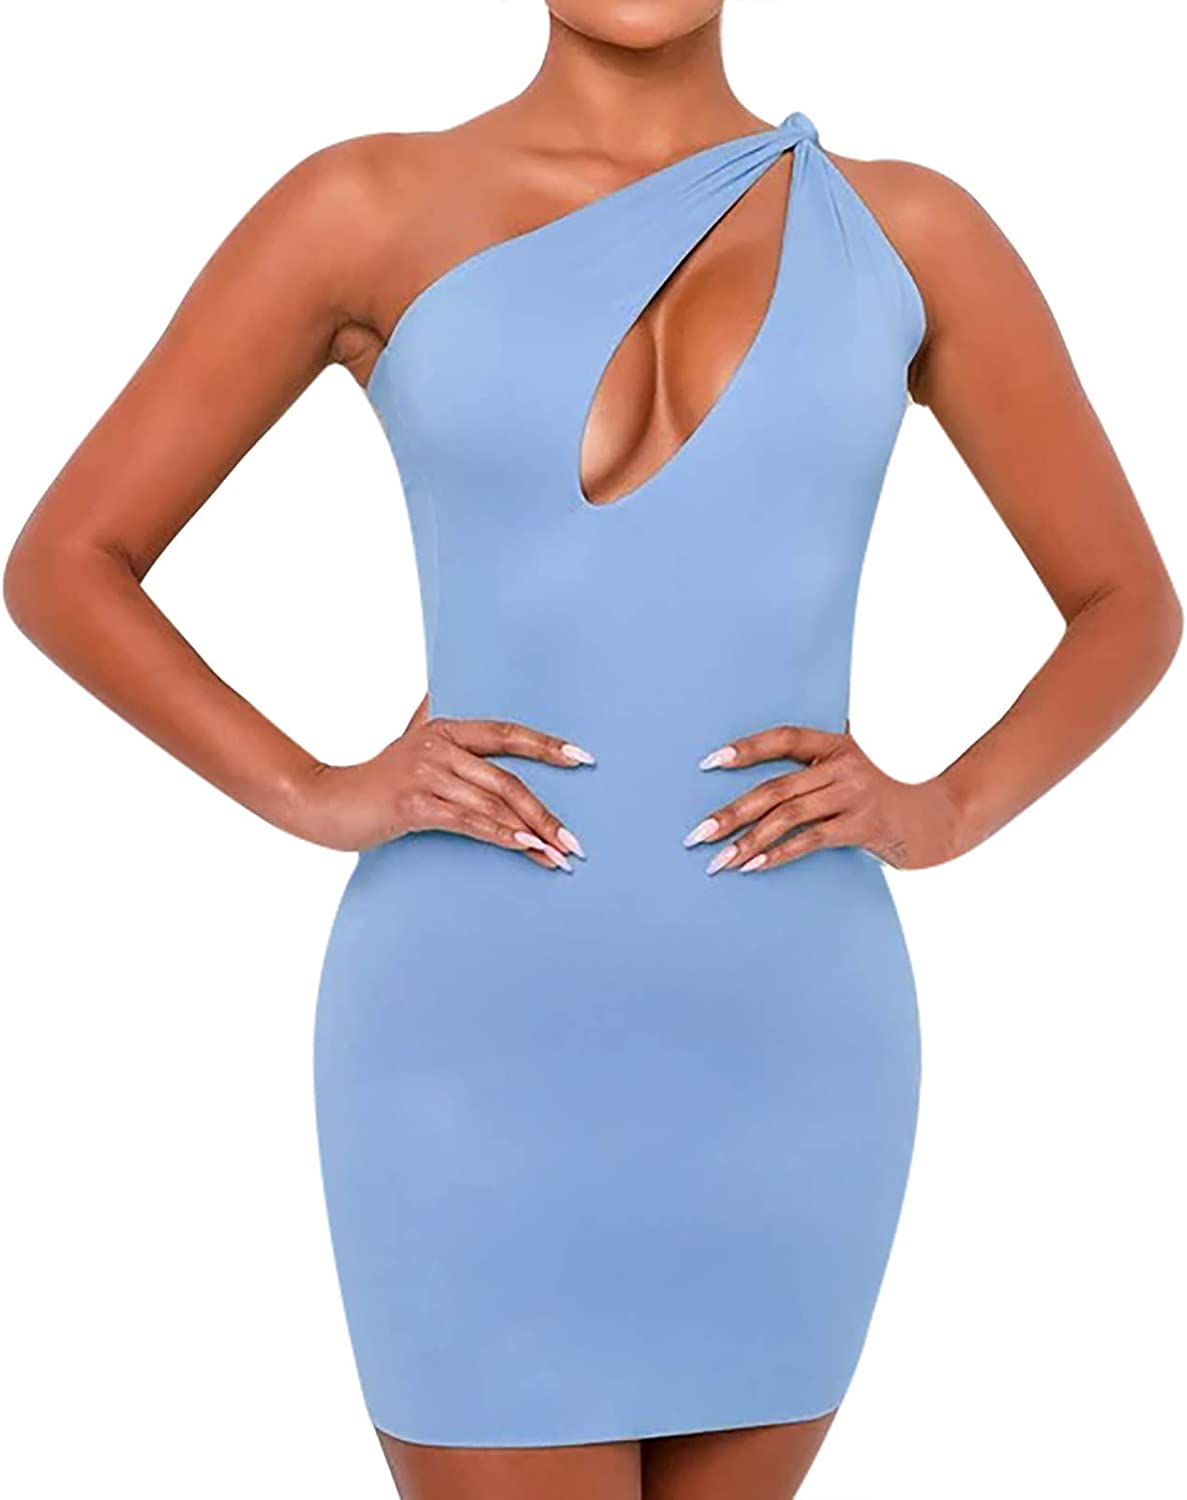 Women's Sexy One Shoulder Hollow Out Knot Mini Dress Sleeveless Bodycon Night Out Club Party Dress